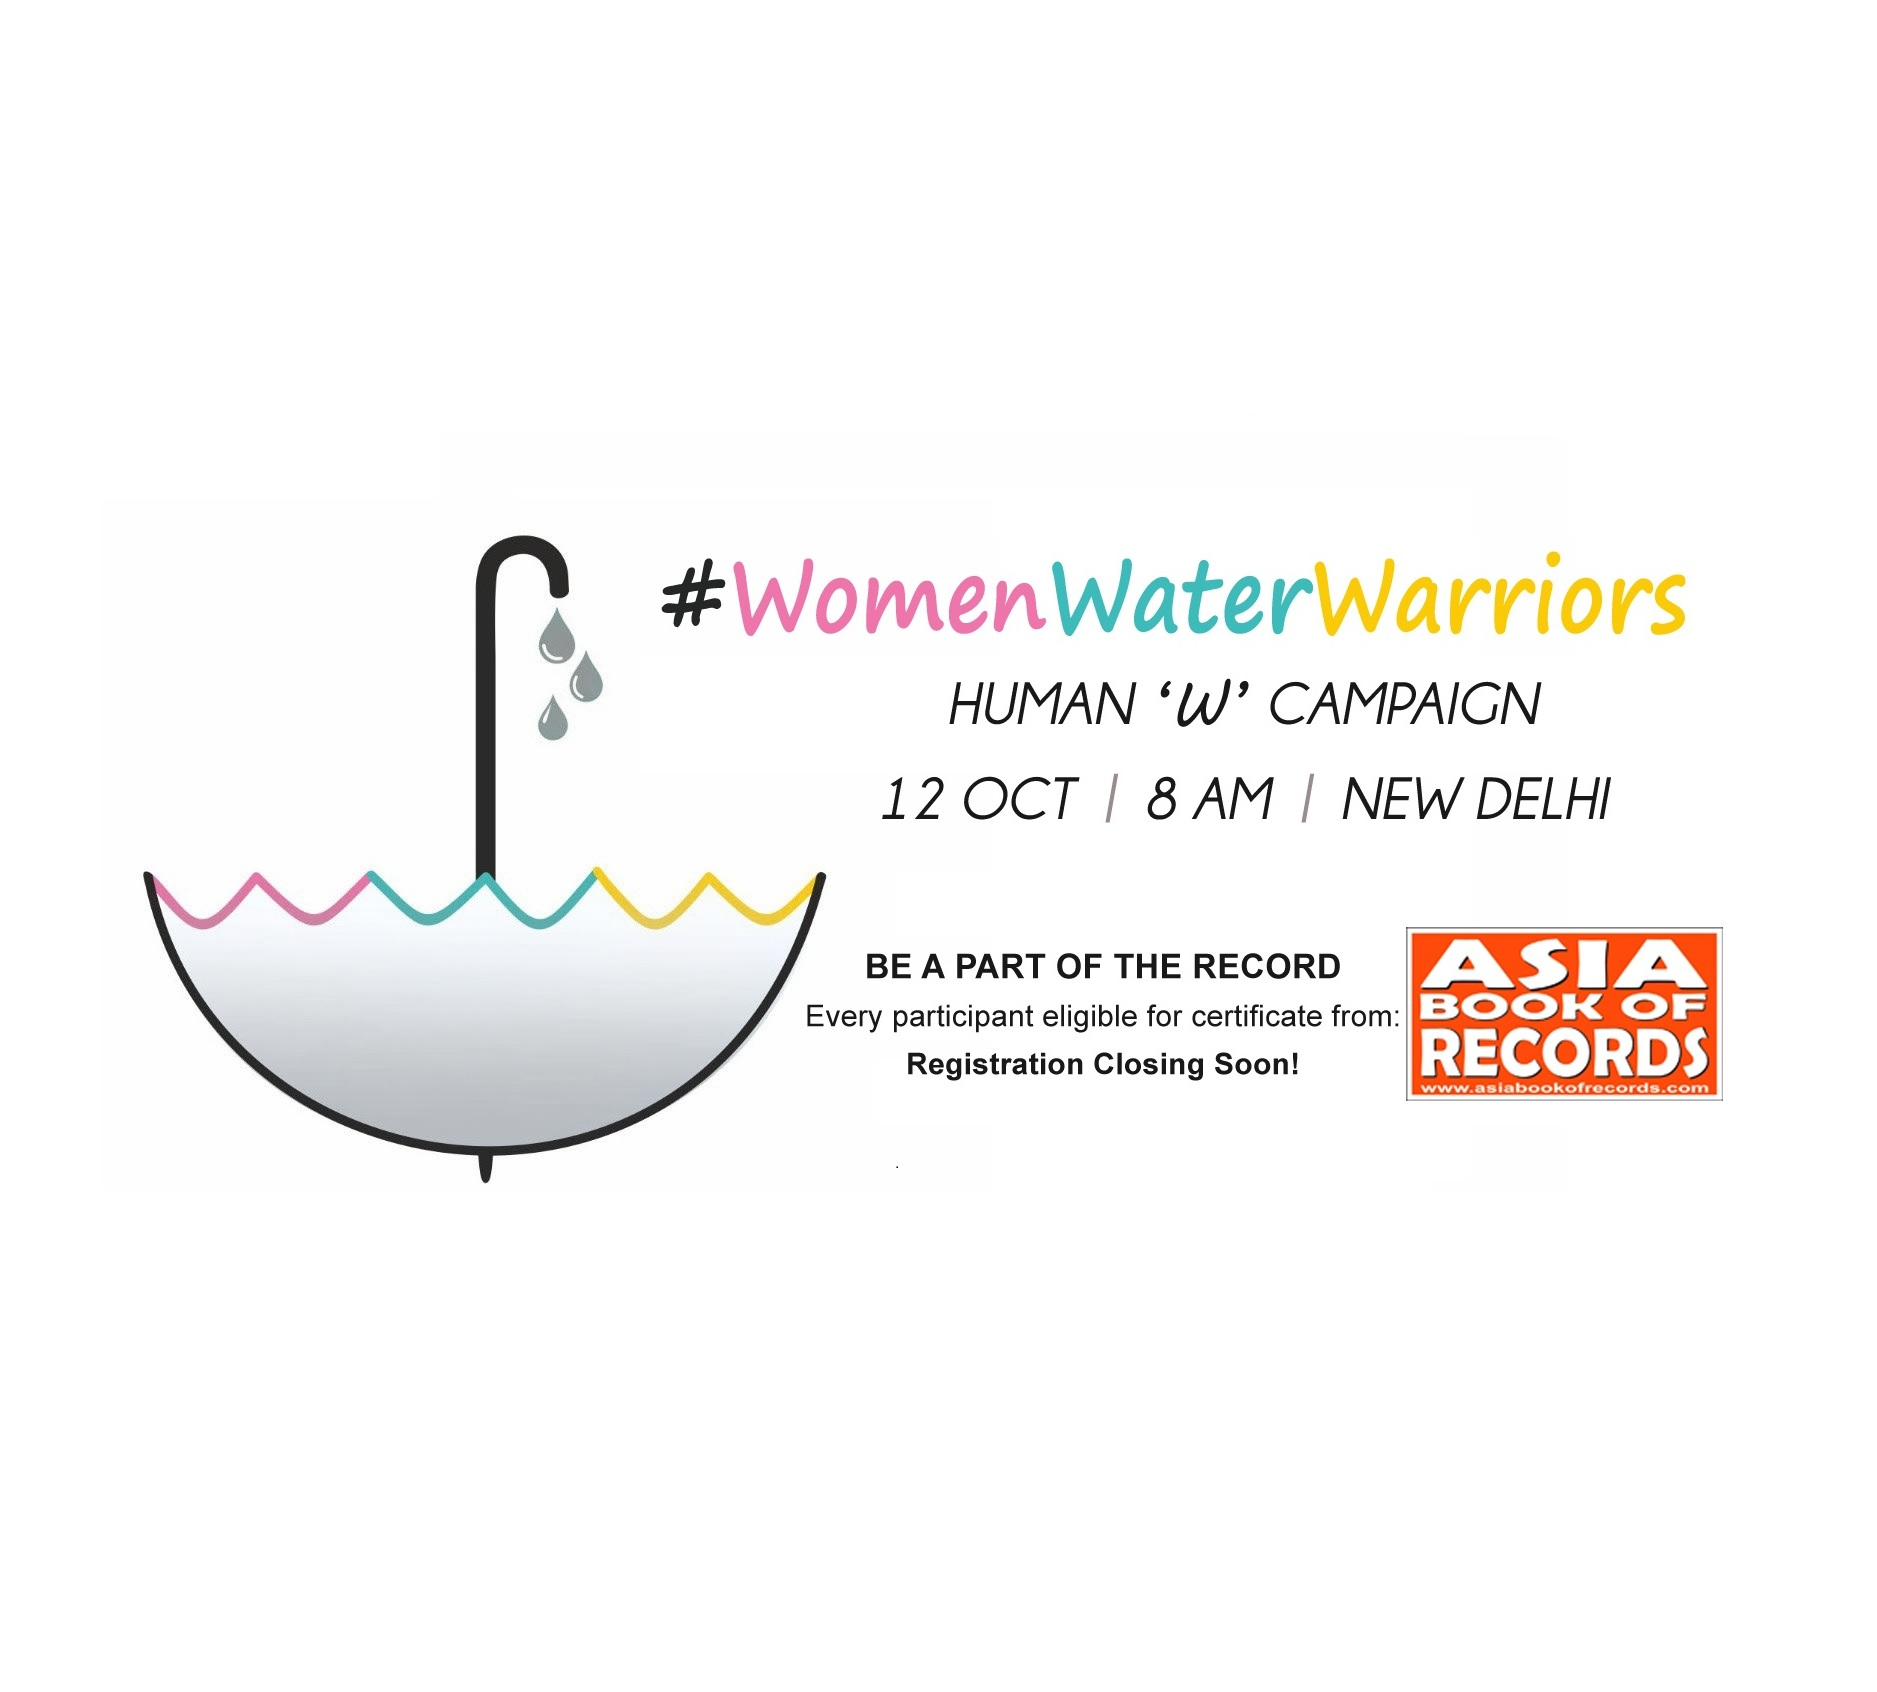 WomenWaterWarriors3 - Lets stand for Water sq